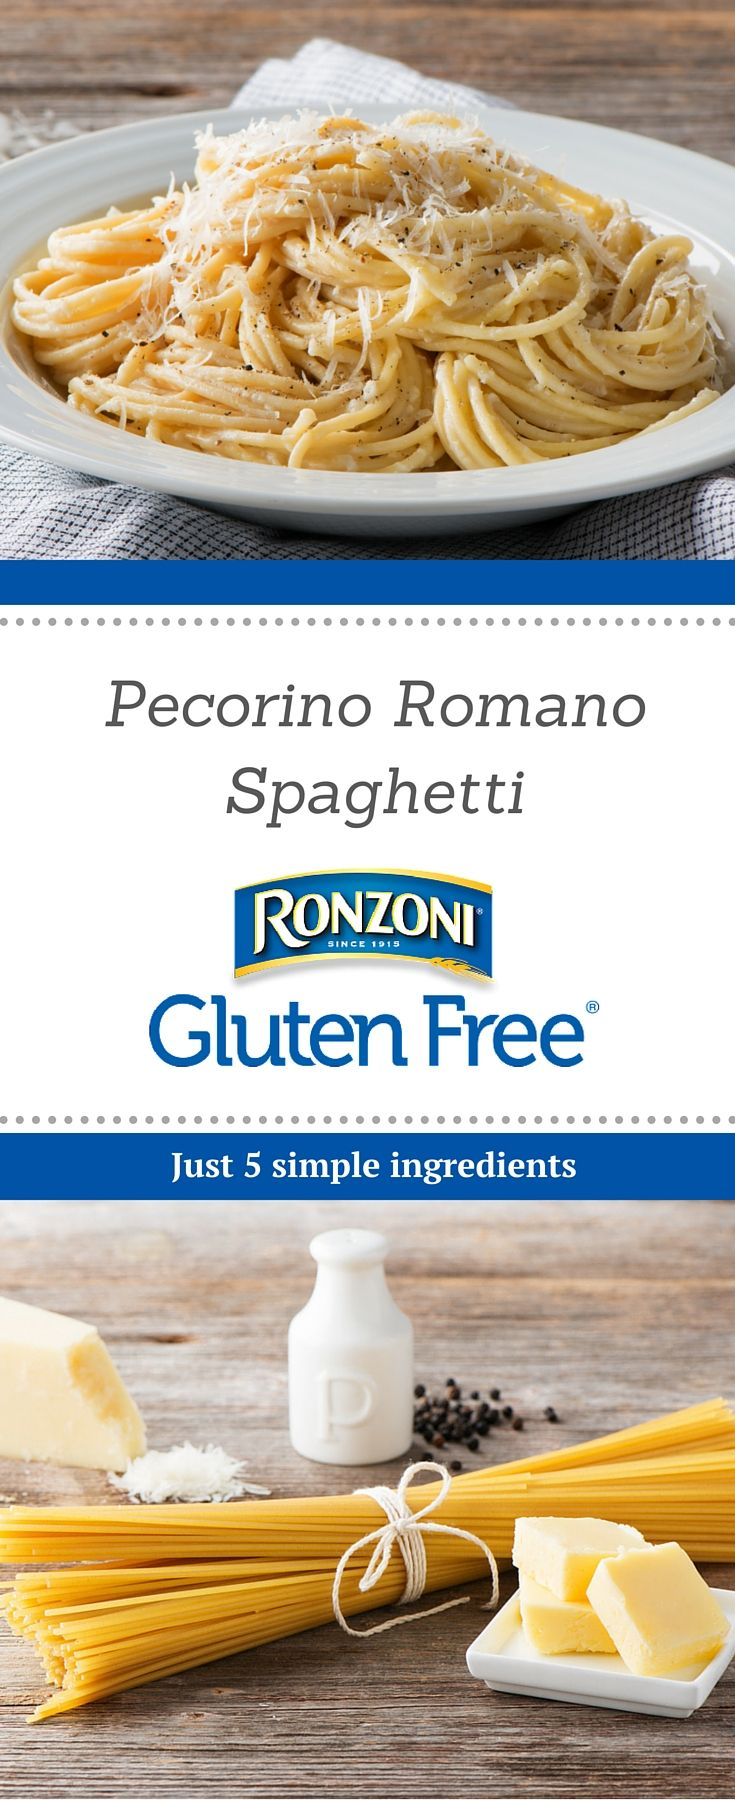 Put spaghetti back on the menu with this delicious Pecorino Romano recipe from Ronzoni Gluten Free pasta. You won't believe it's gluten free!